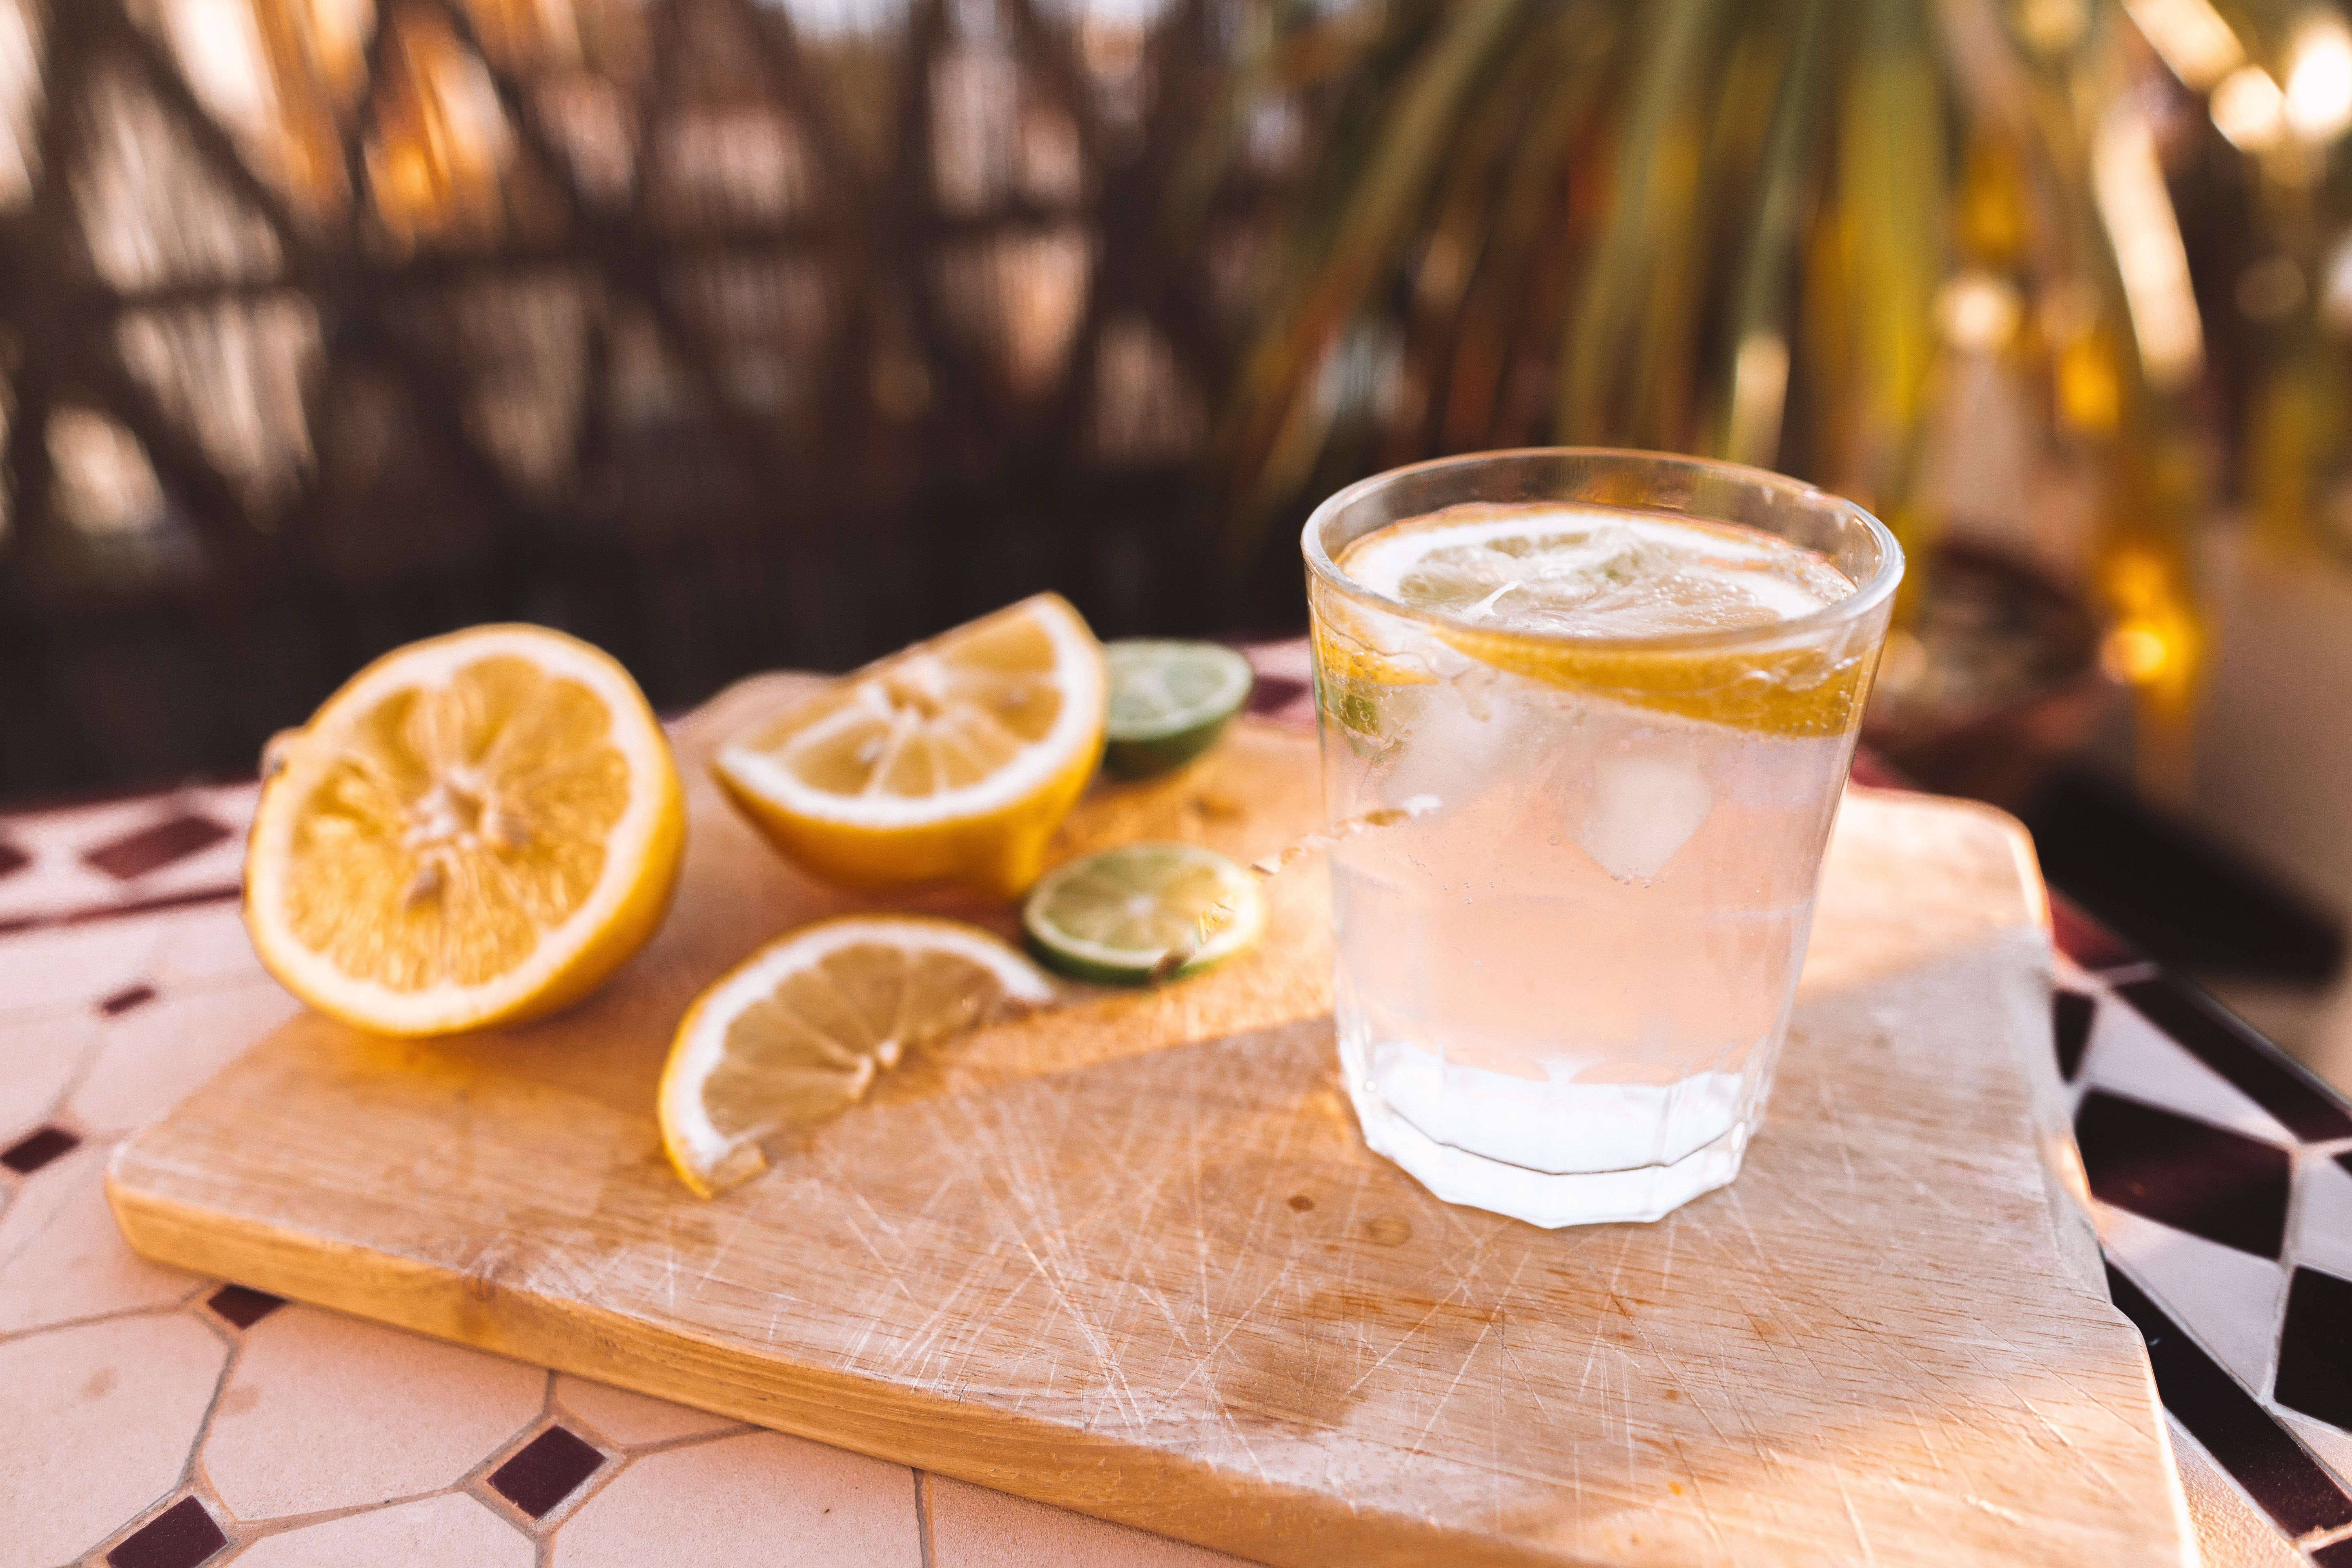 Supermarket Own-Brand Gin Beats Gordon's And Tanqueray In Blind Taste